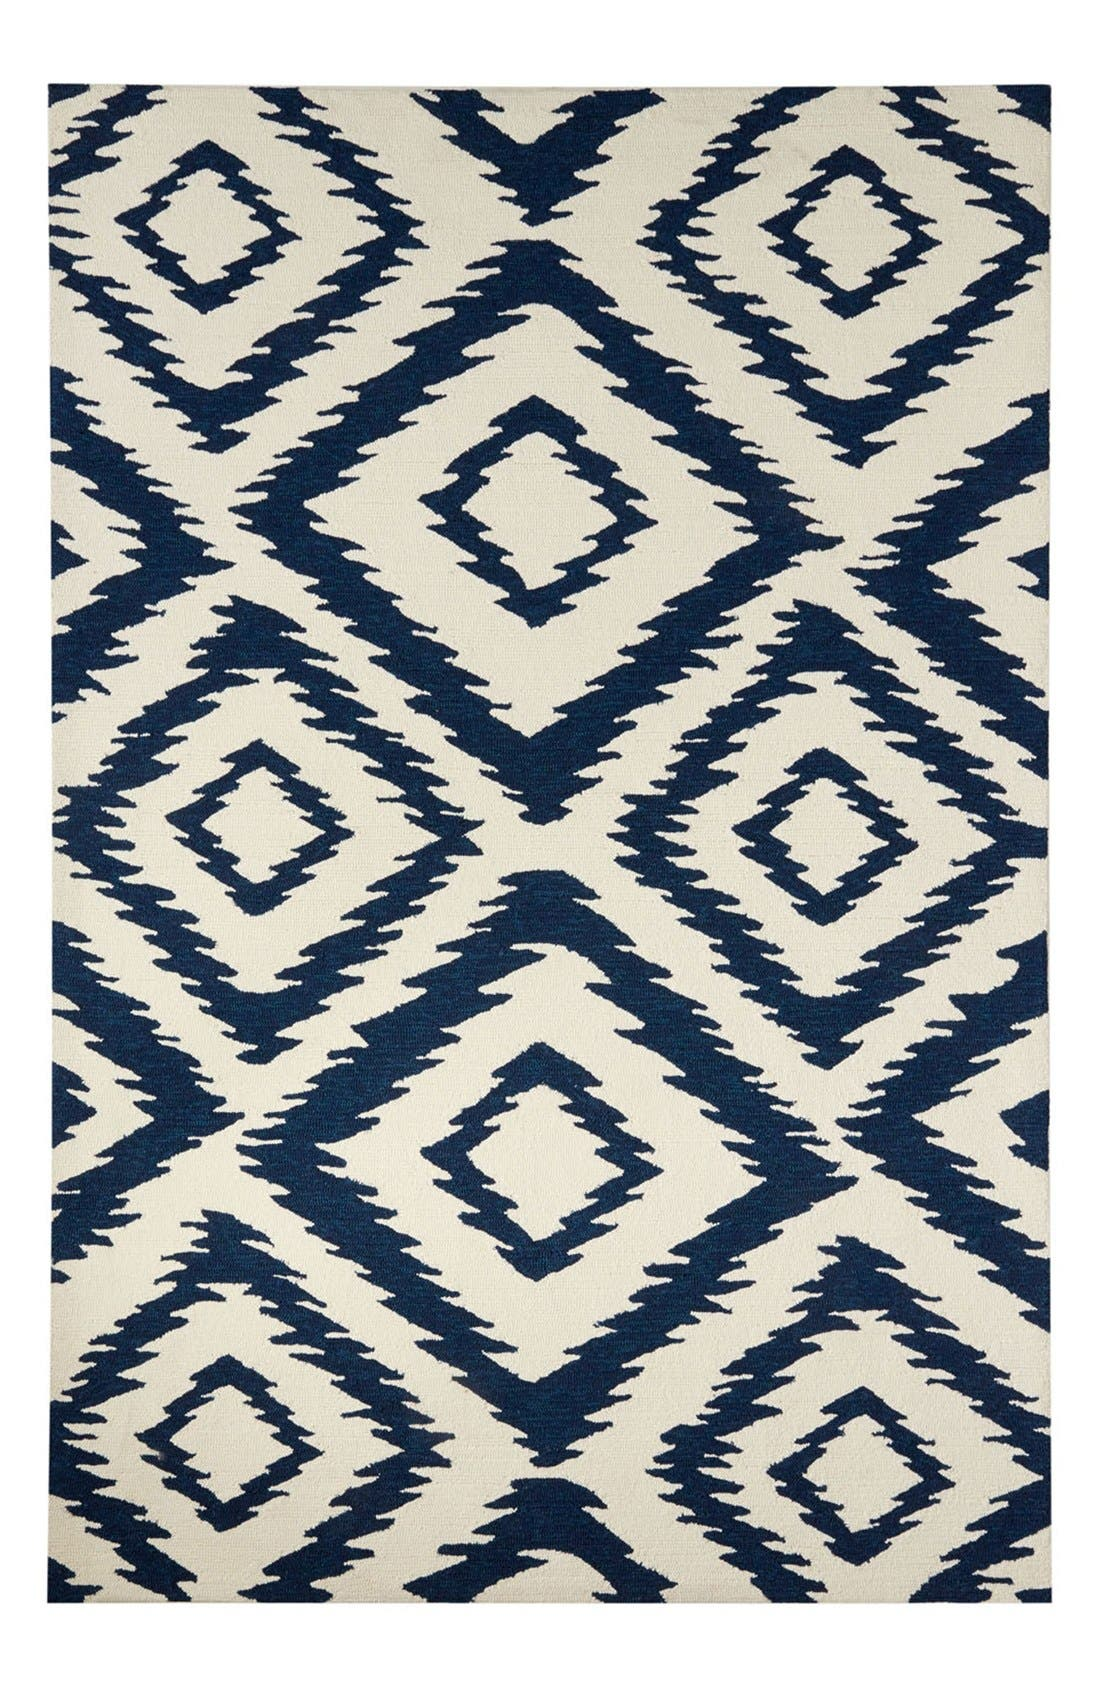 Alternate Image 1 Selected - Jaipur 'Catalina Diamond' Indoor/Outdoor Rug